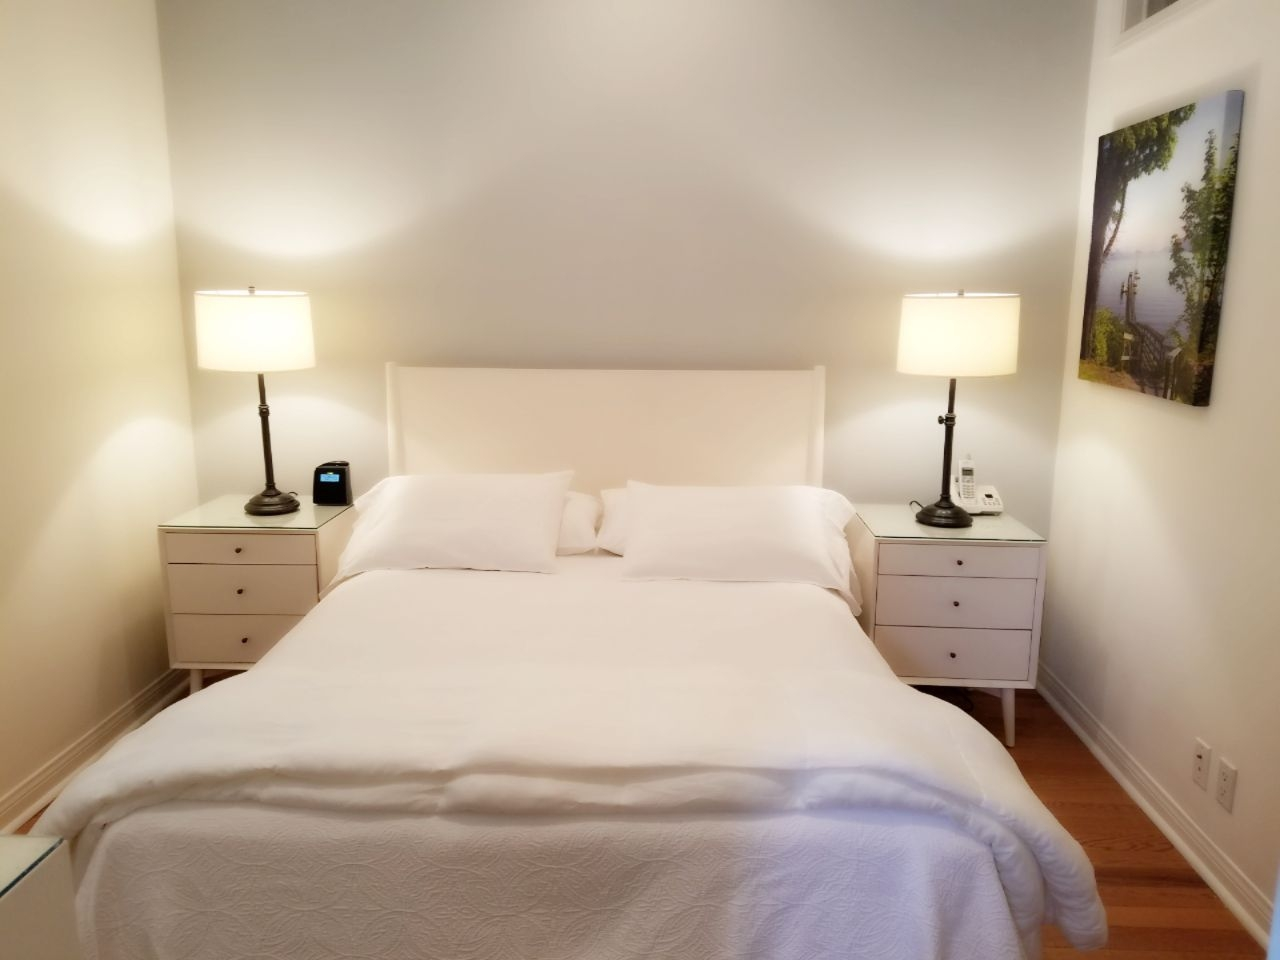 1 Block To The Beach! Luxurious Fully Furnished Santa Monica Studio Suite!